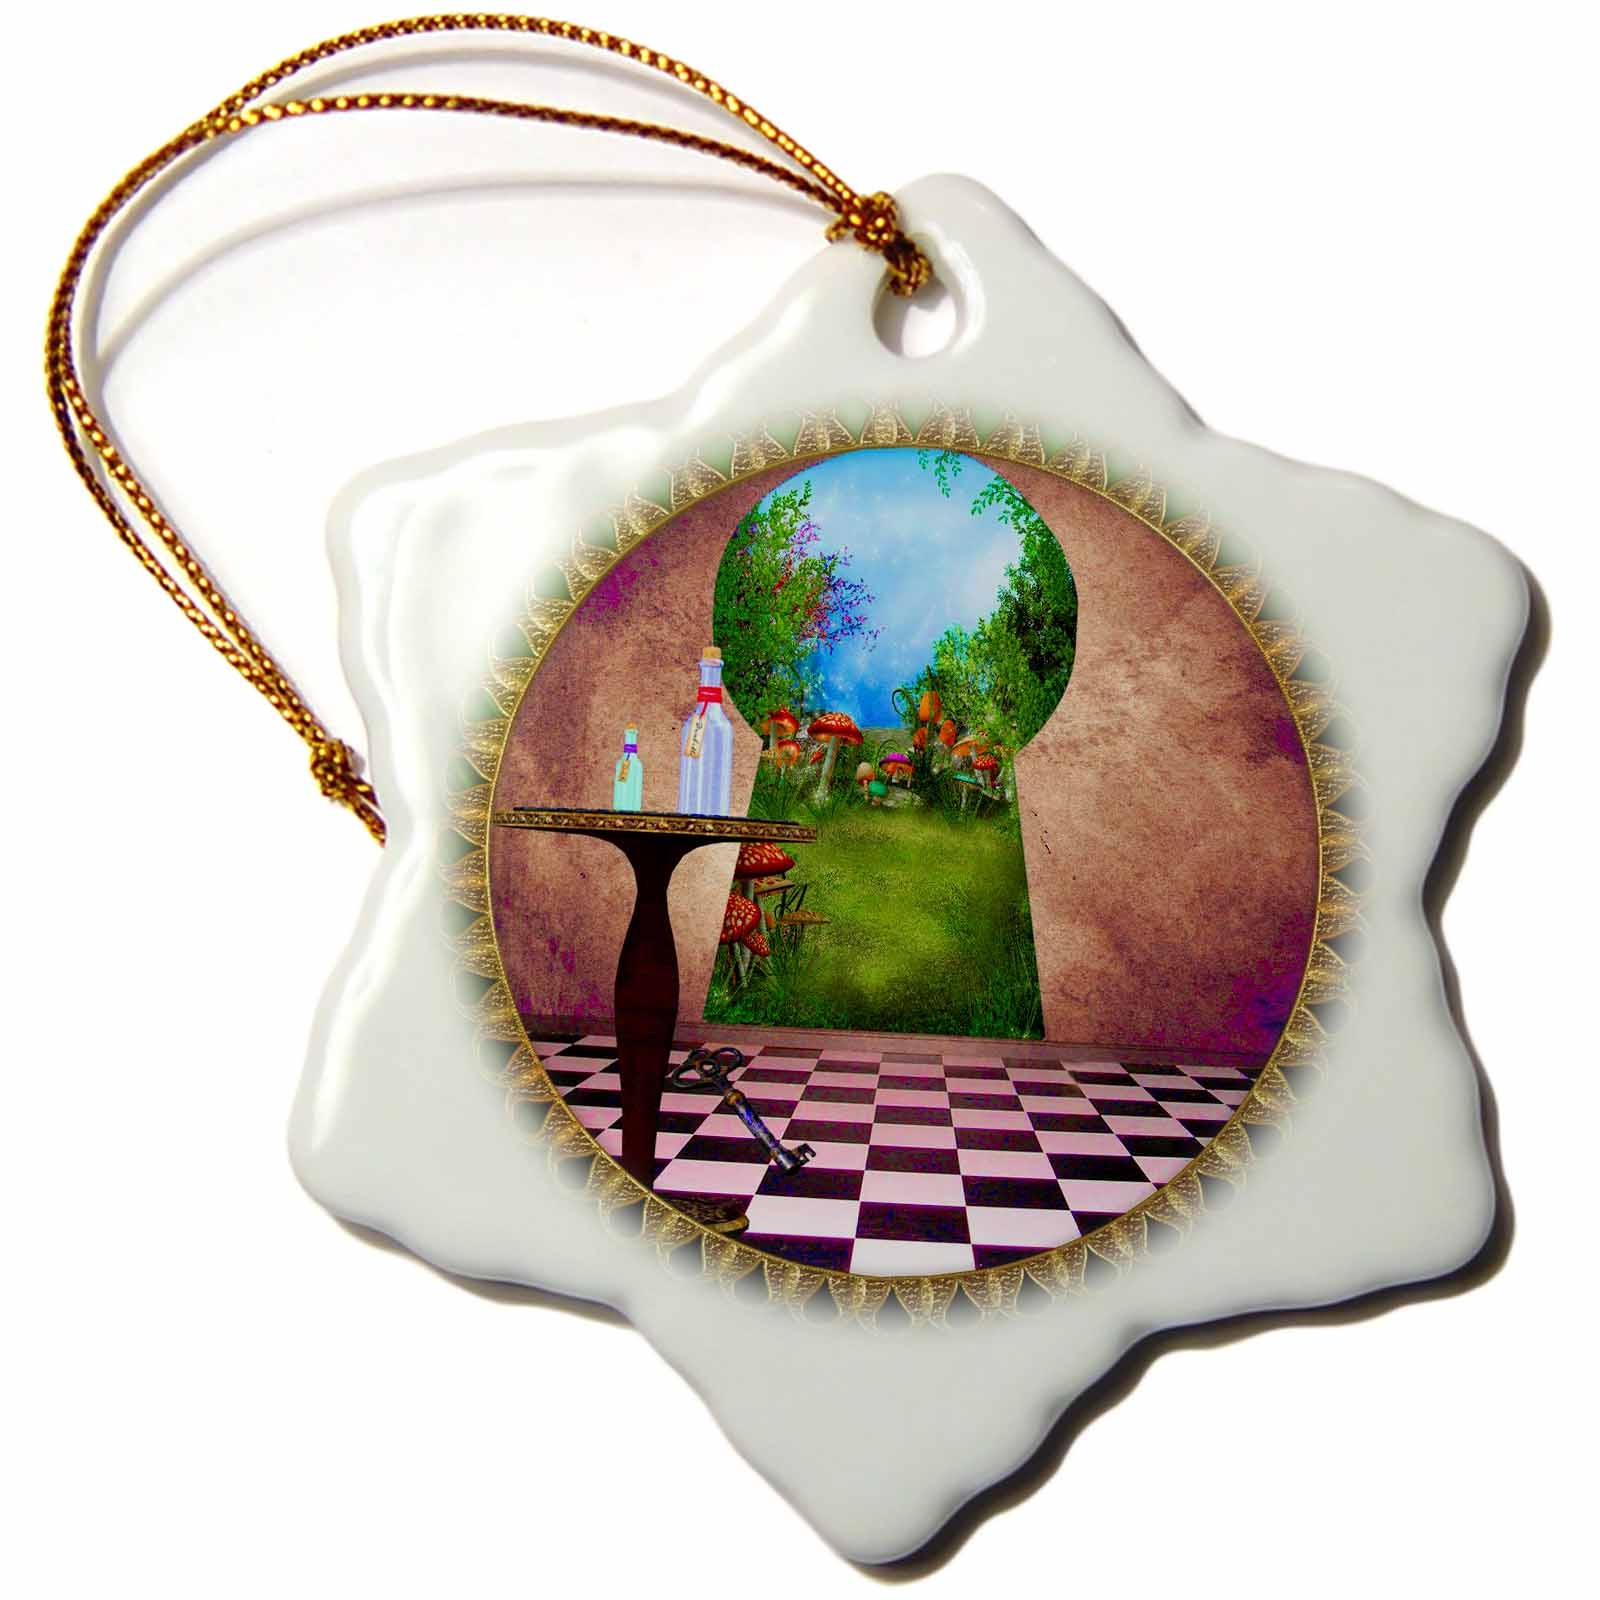 3dRose Through the keyholes Alice In Wonderland art checkered floor bottle of magic water, Snowflake Ornament, Porcelain, 3-inch